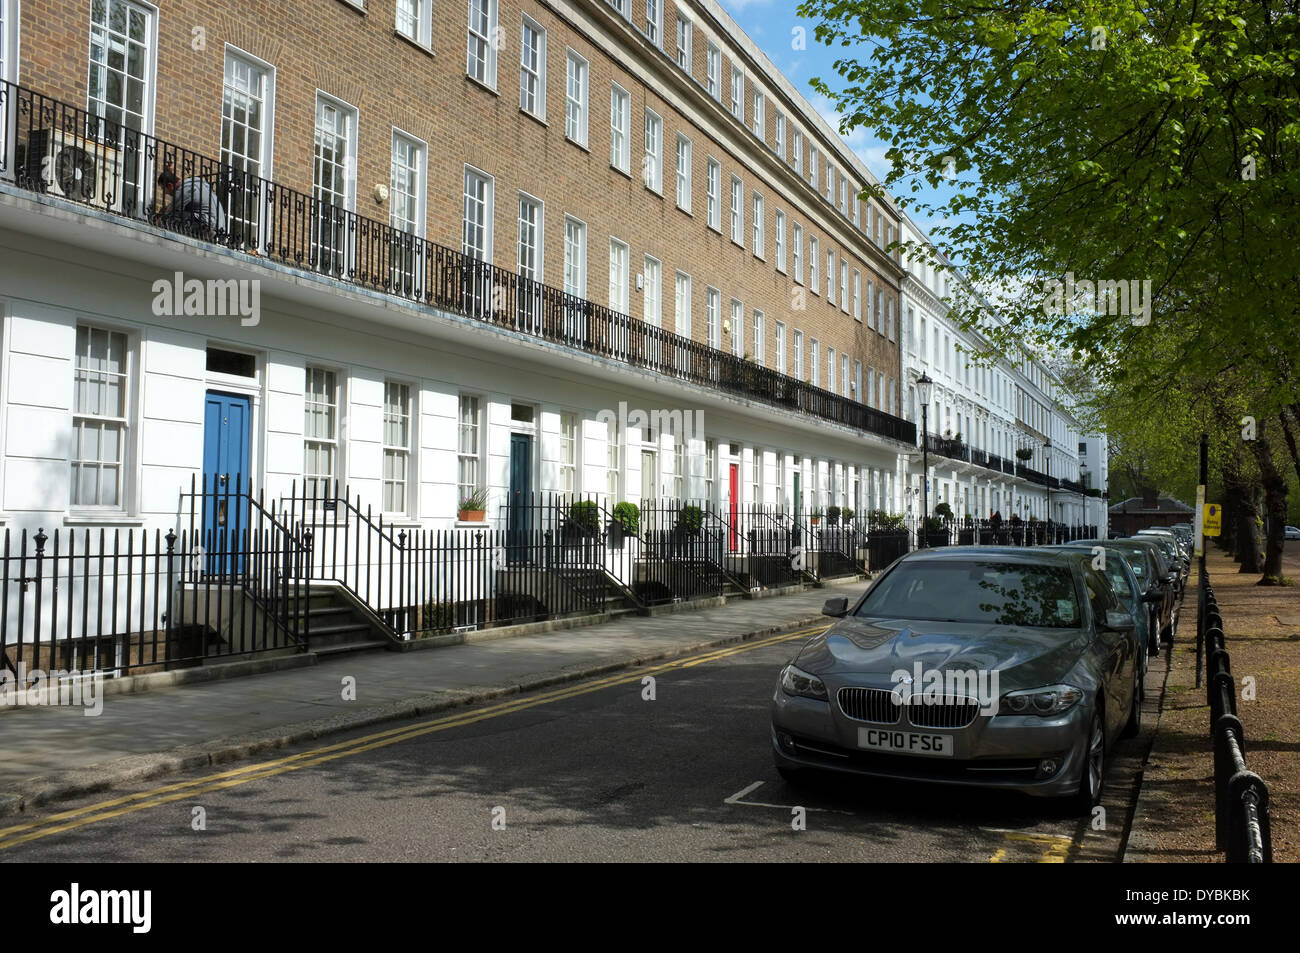 royal avenue off kings road chelsea london sw3 uk 2014 - Stock Image